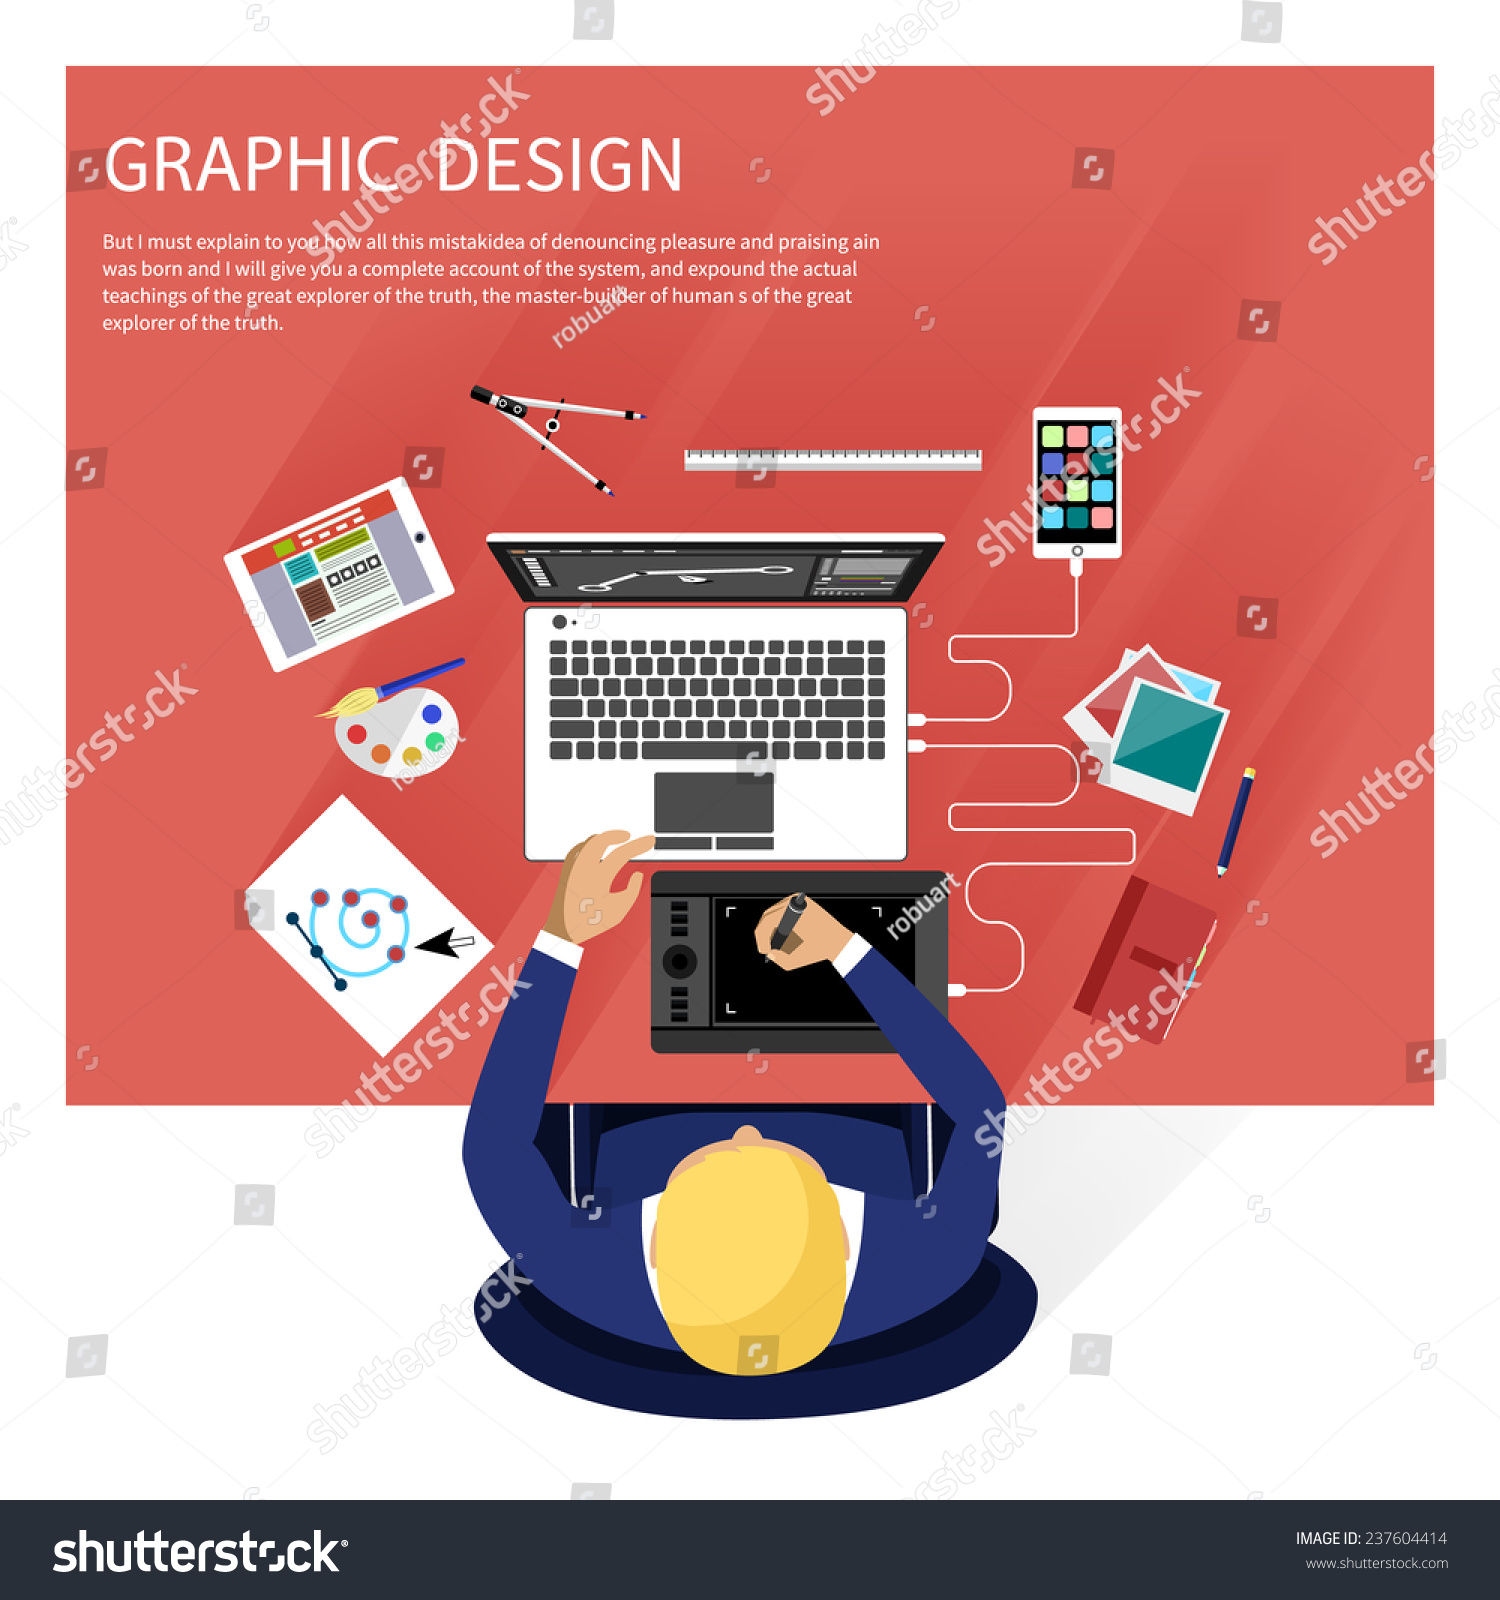 Concept For Graphic Design, Designer Tools And Software In